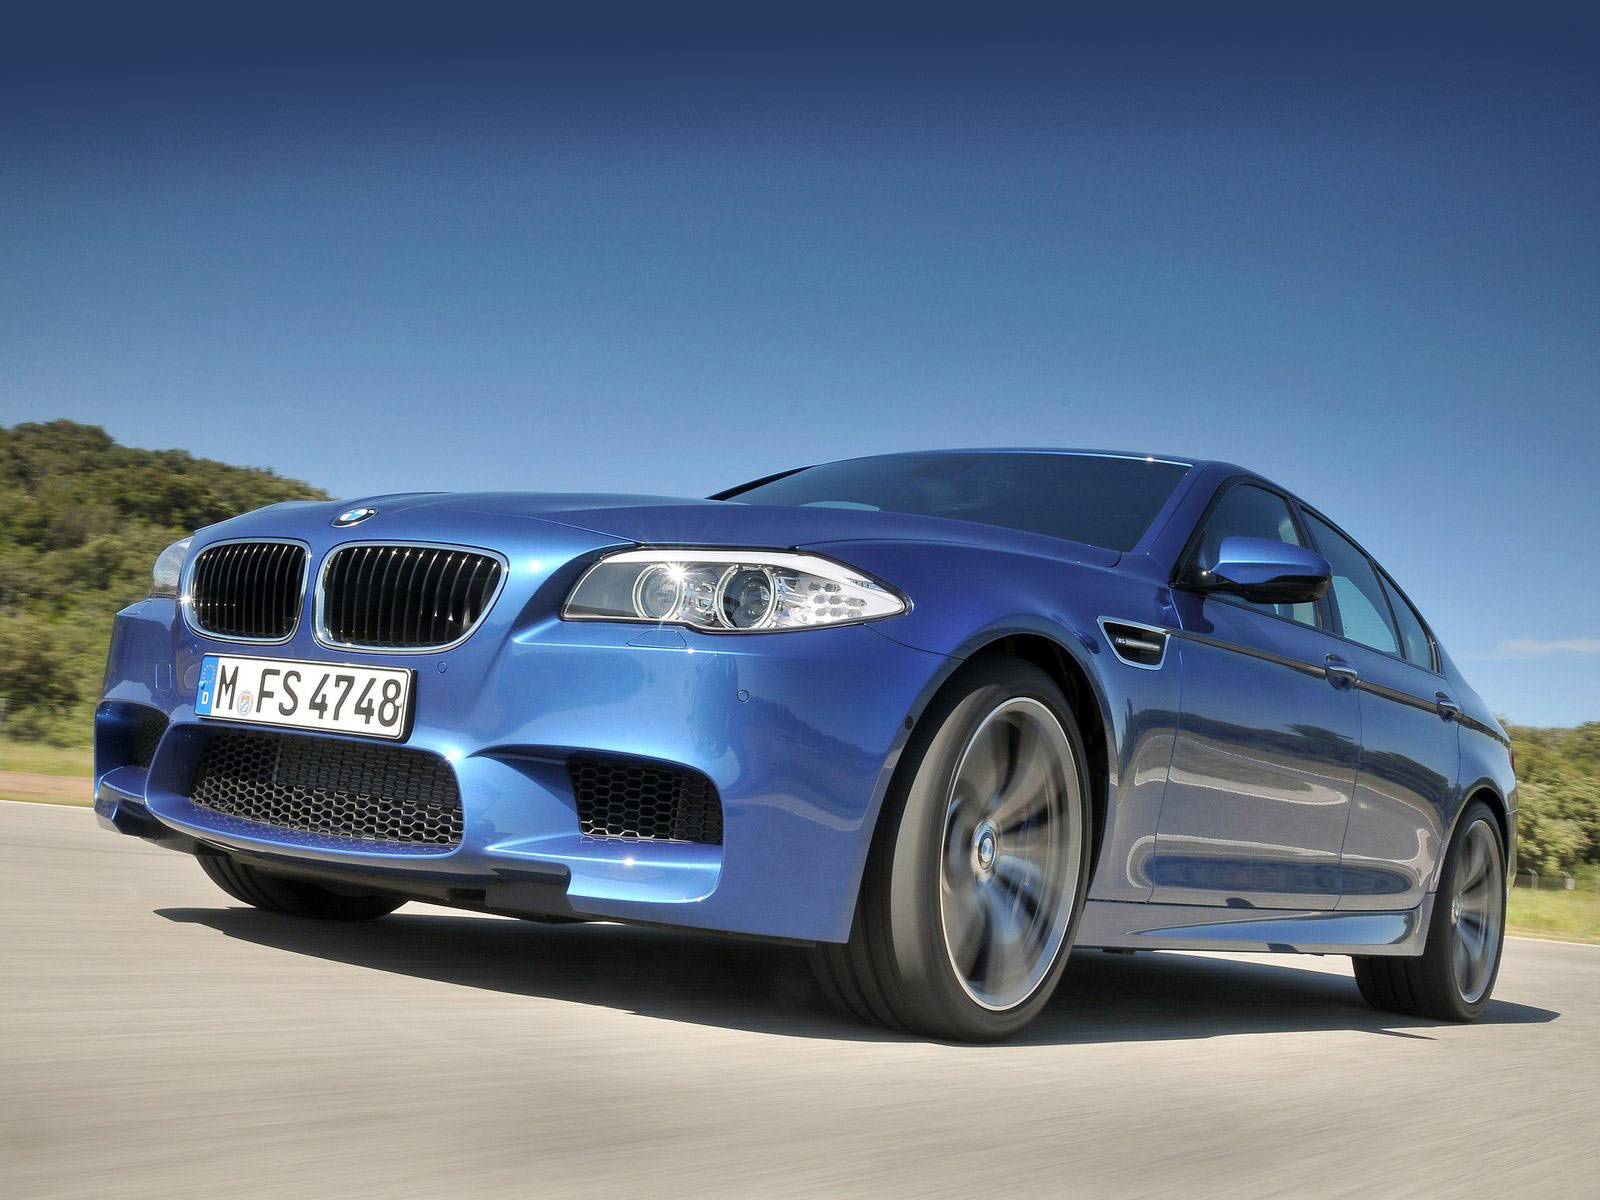 2012 BMW M5 car accident lawyers informations wallpaper 1600x1200